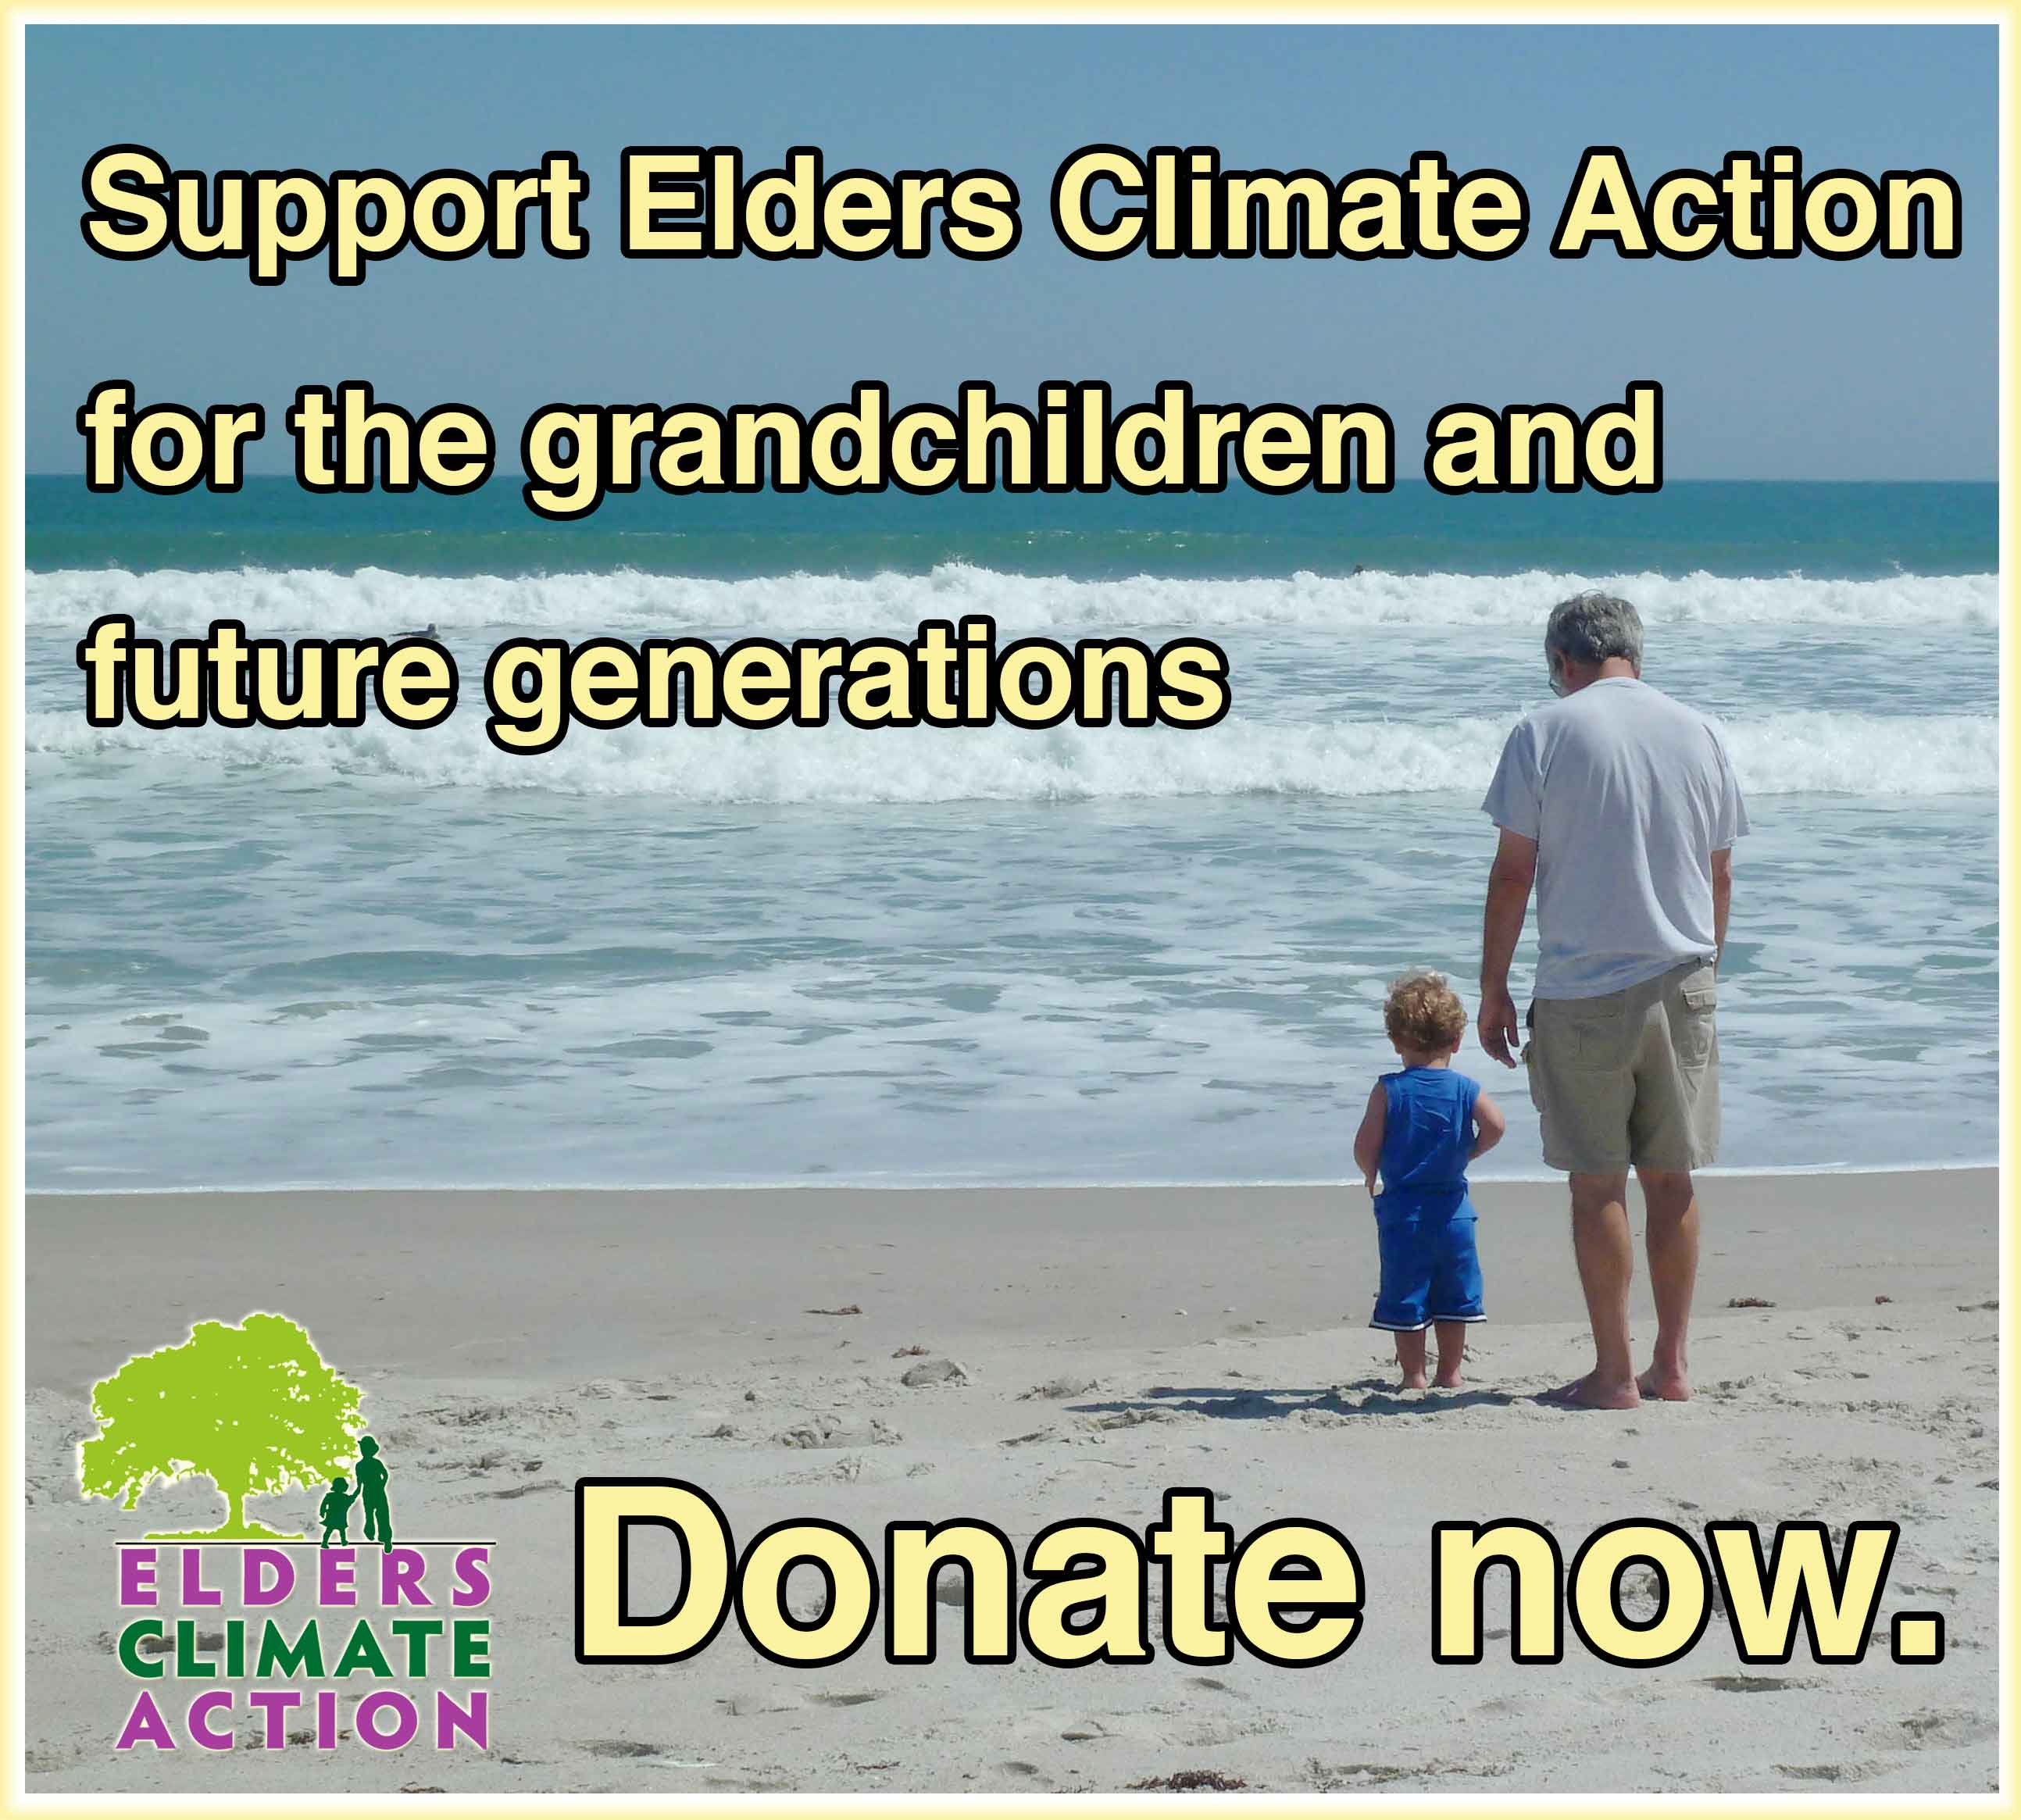 eca_fb-donate-now.jpg